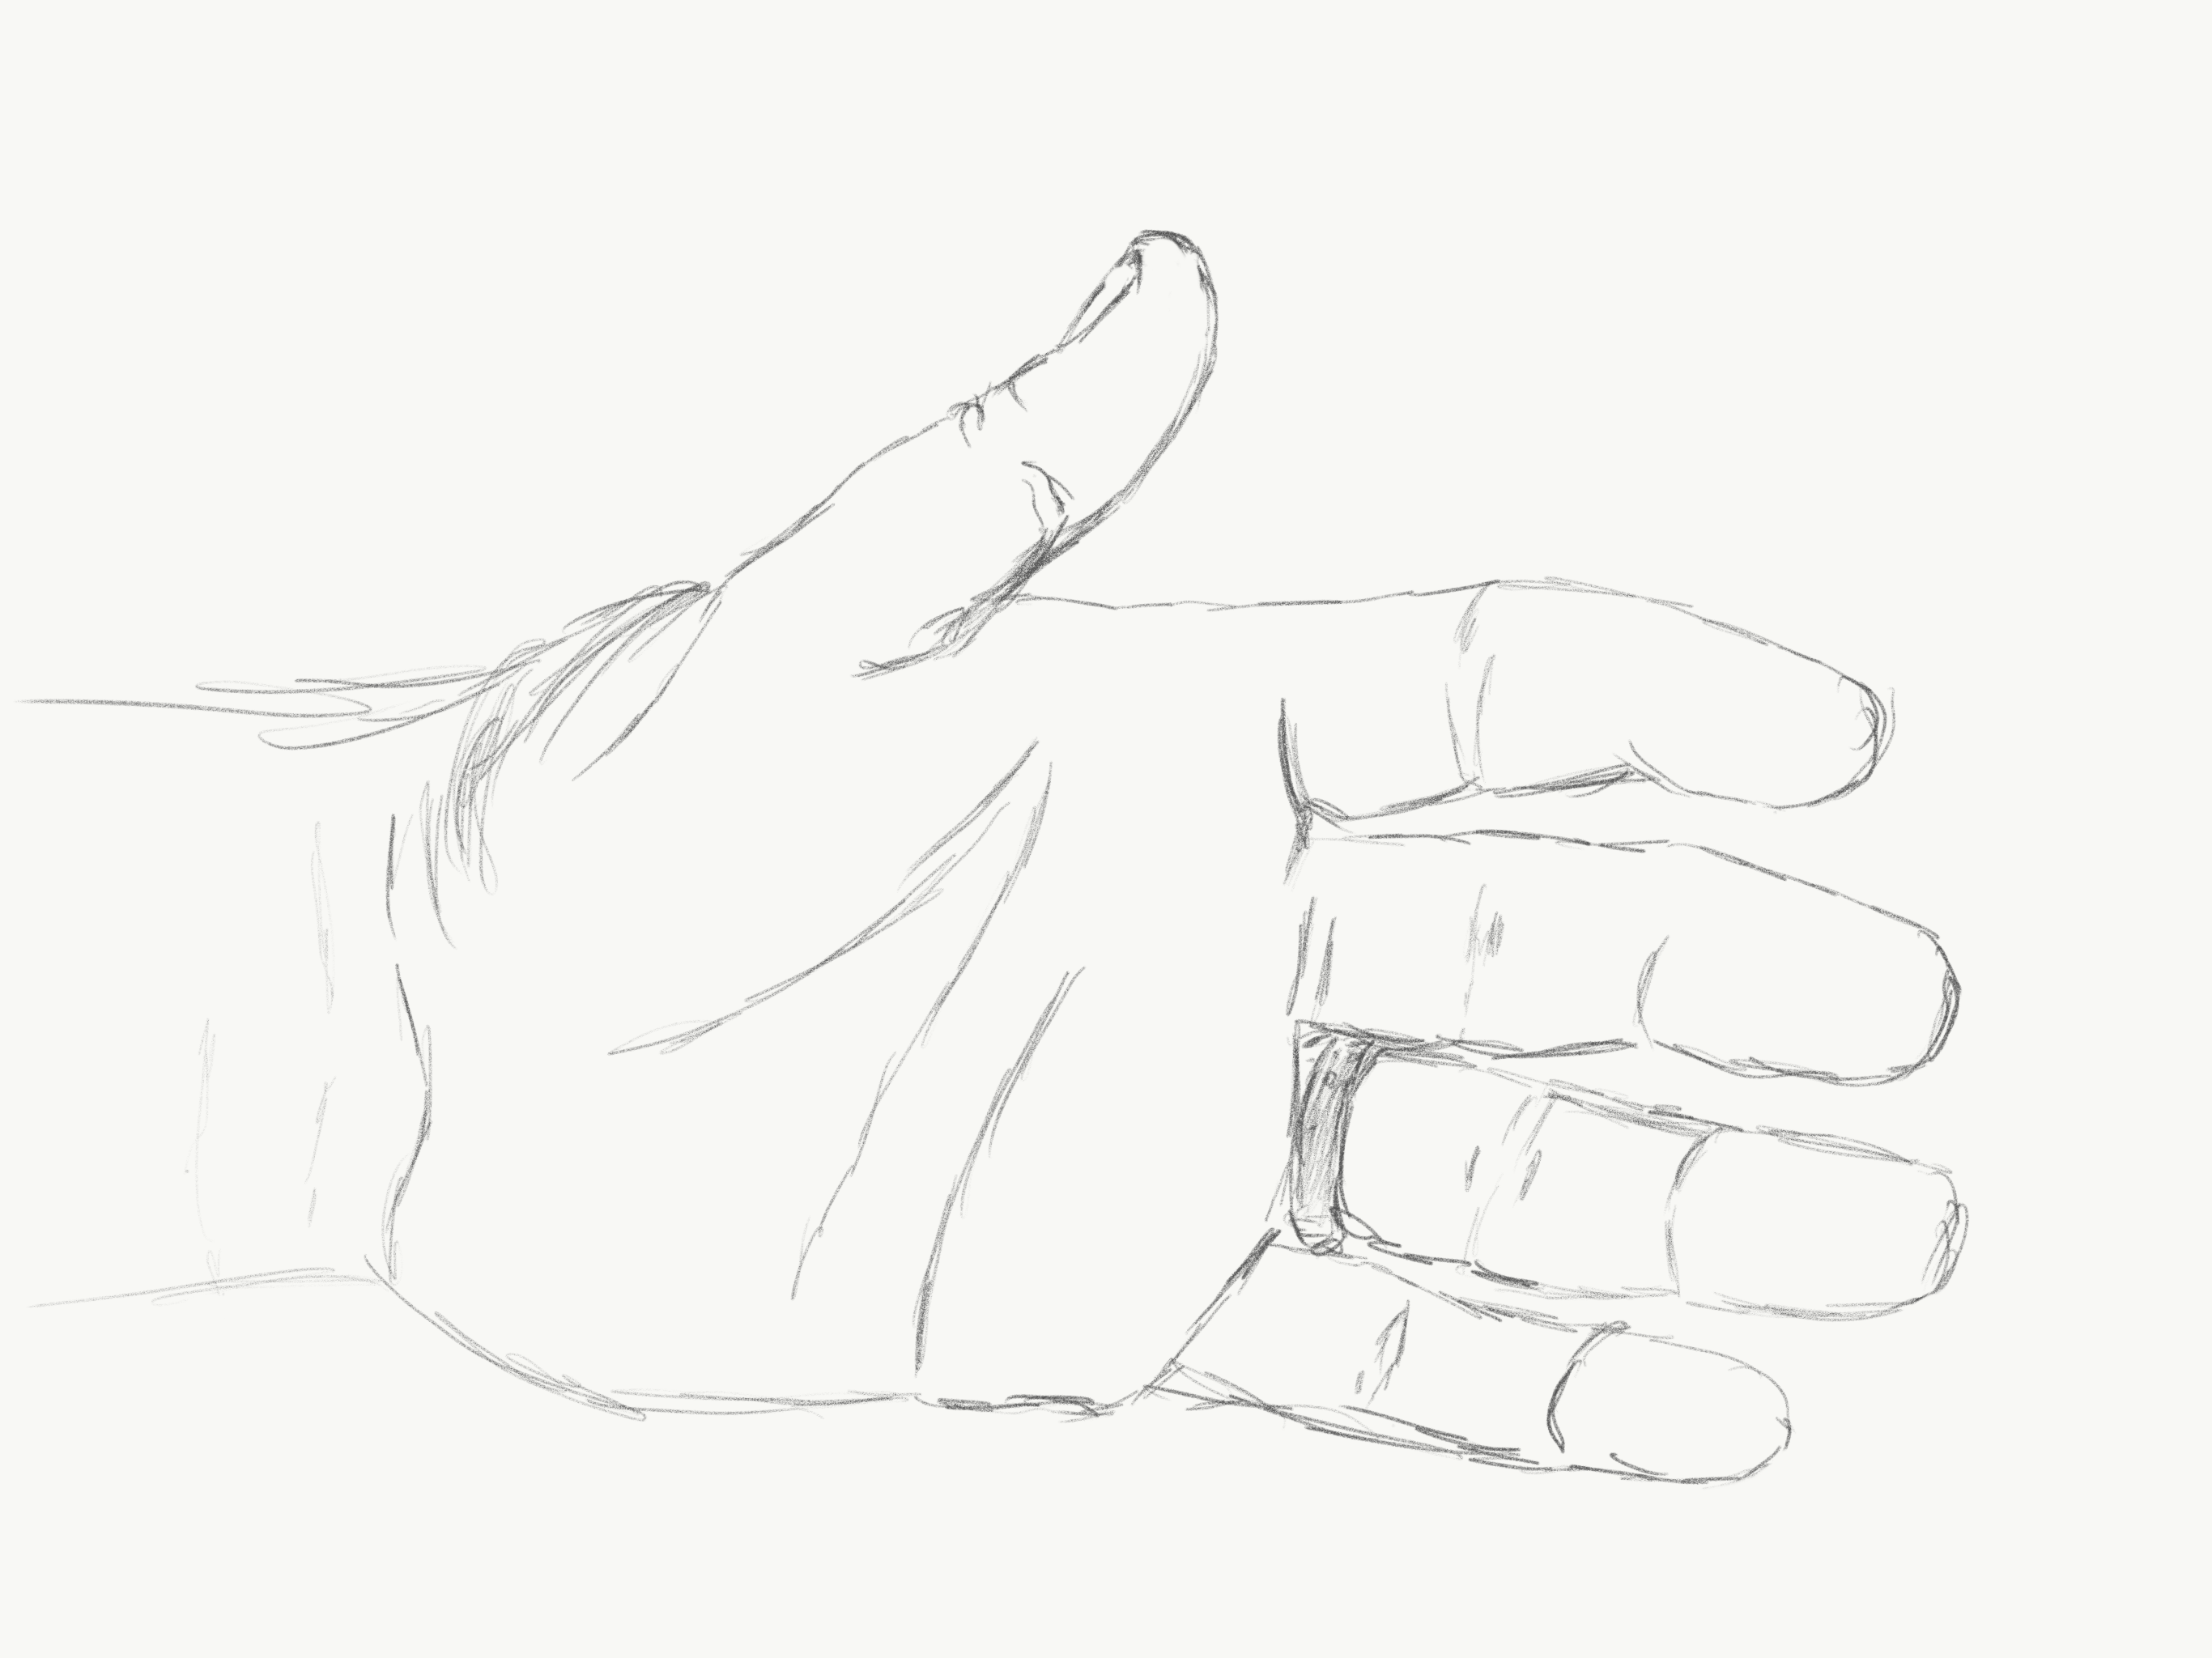 Drawing my hand for the first time in a while hand time-lapse wip sketch